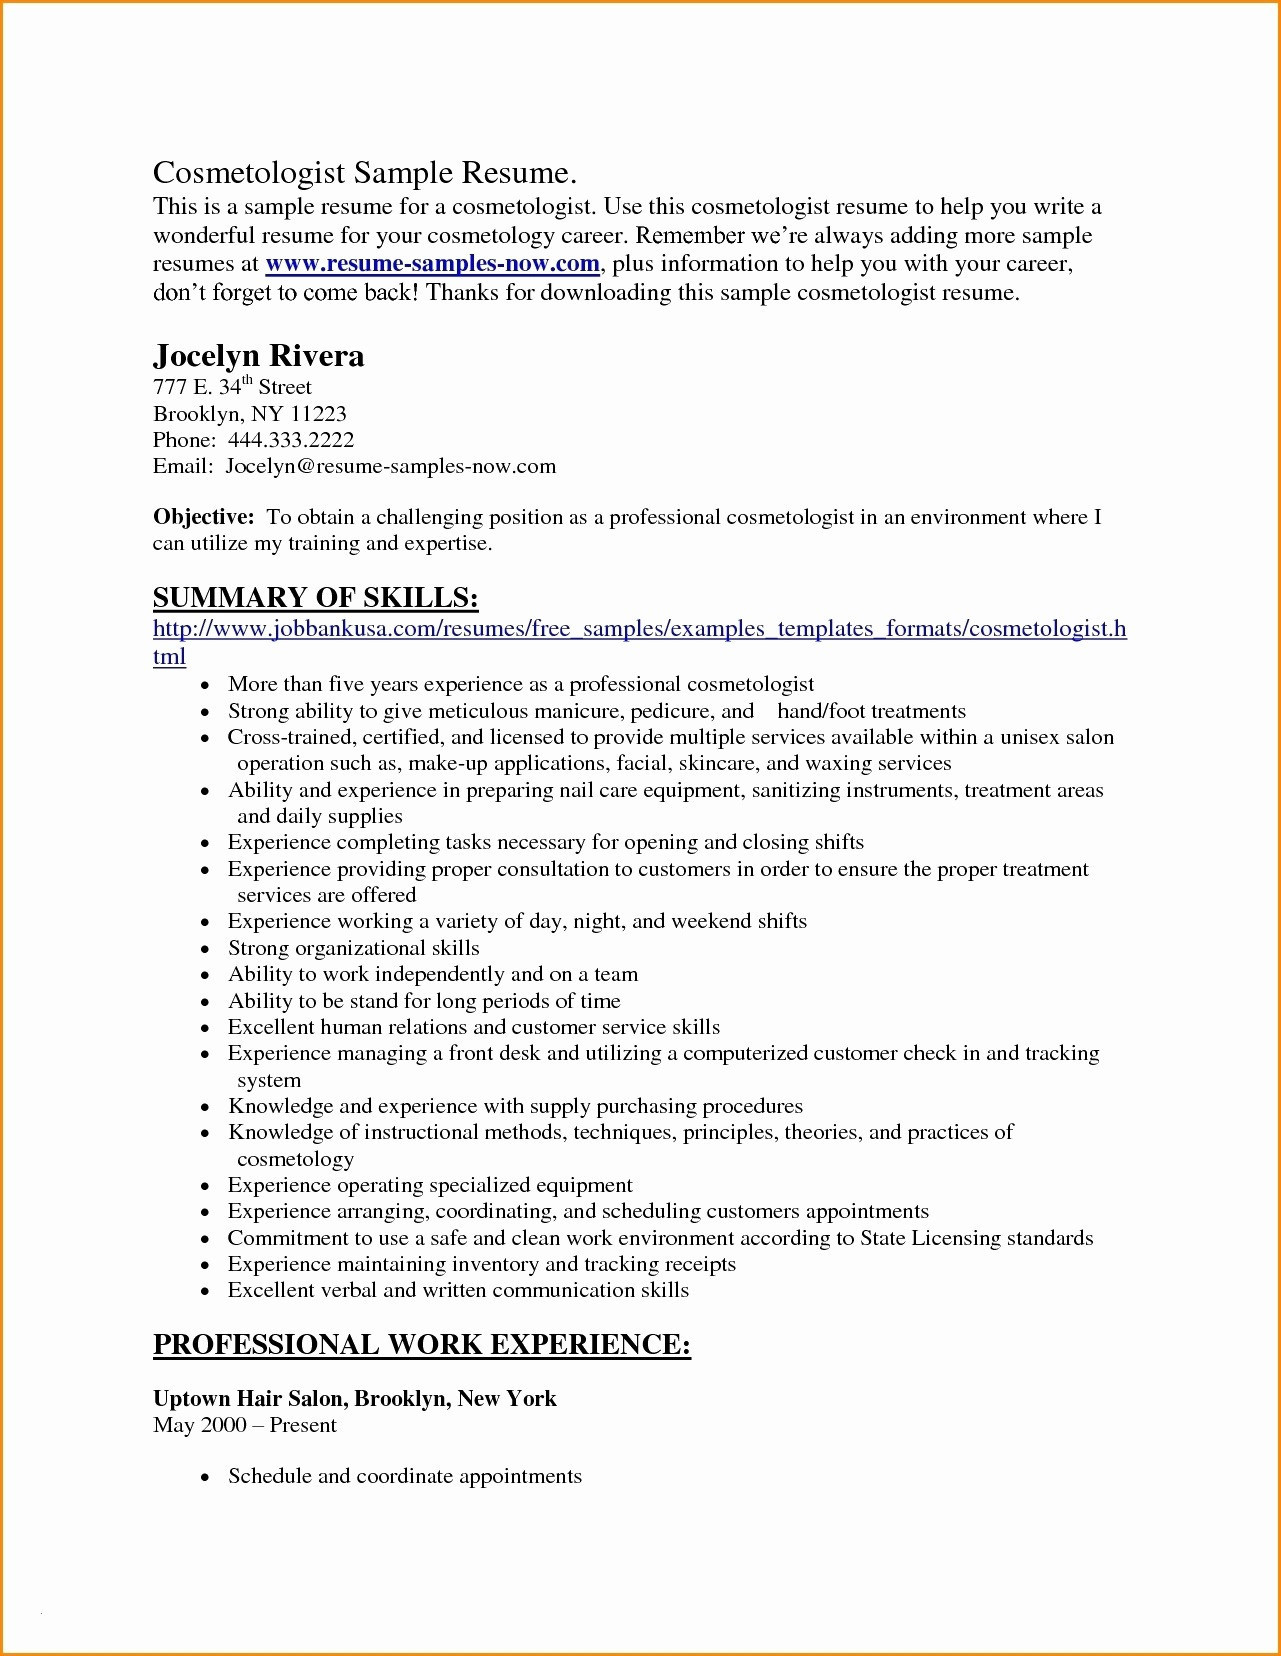 Cosmetology Resume Skills - Cosmetology Resume Templates New Template Examples Fresh 20